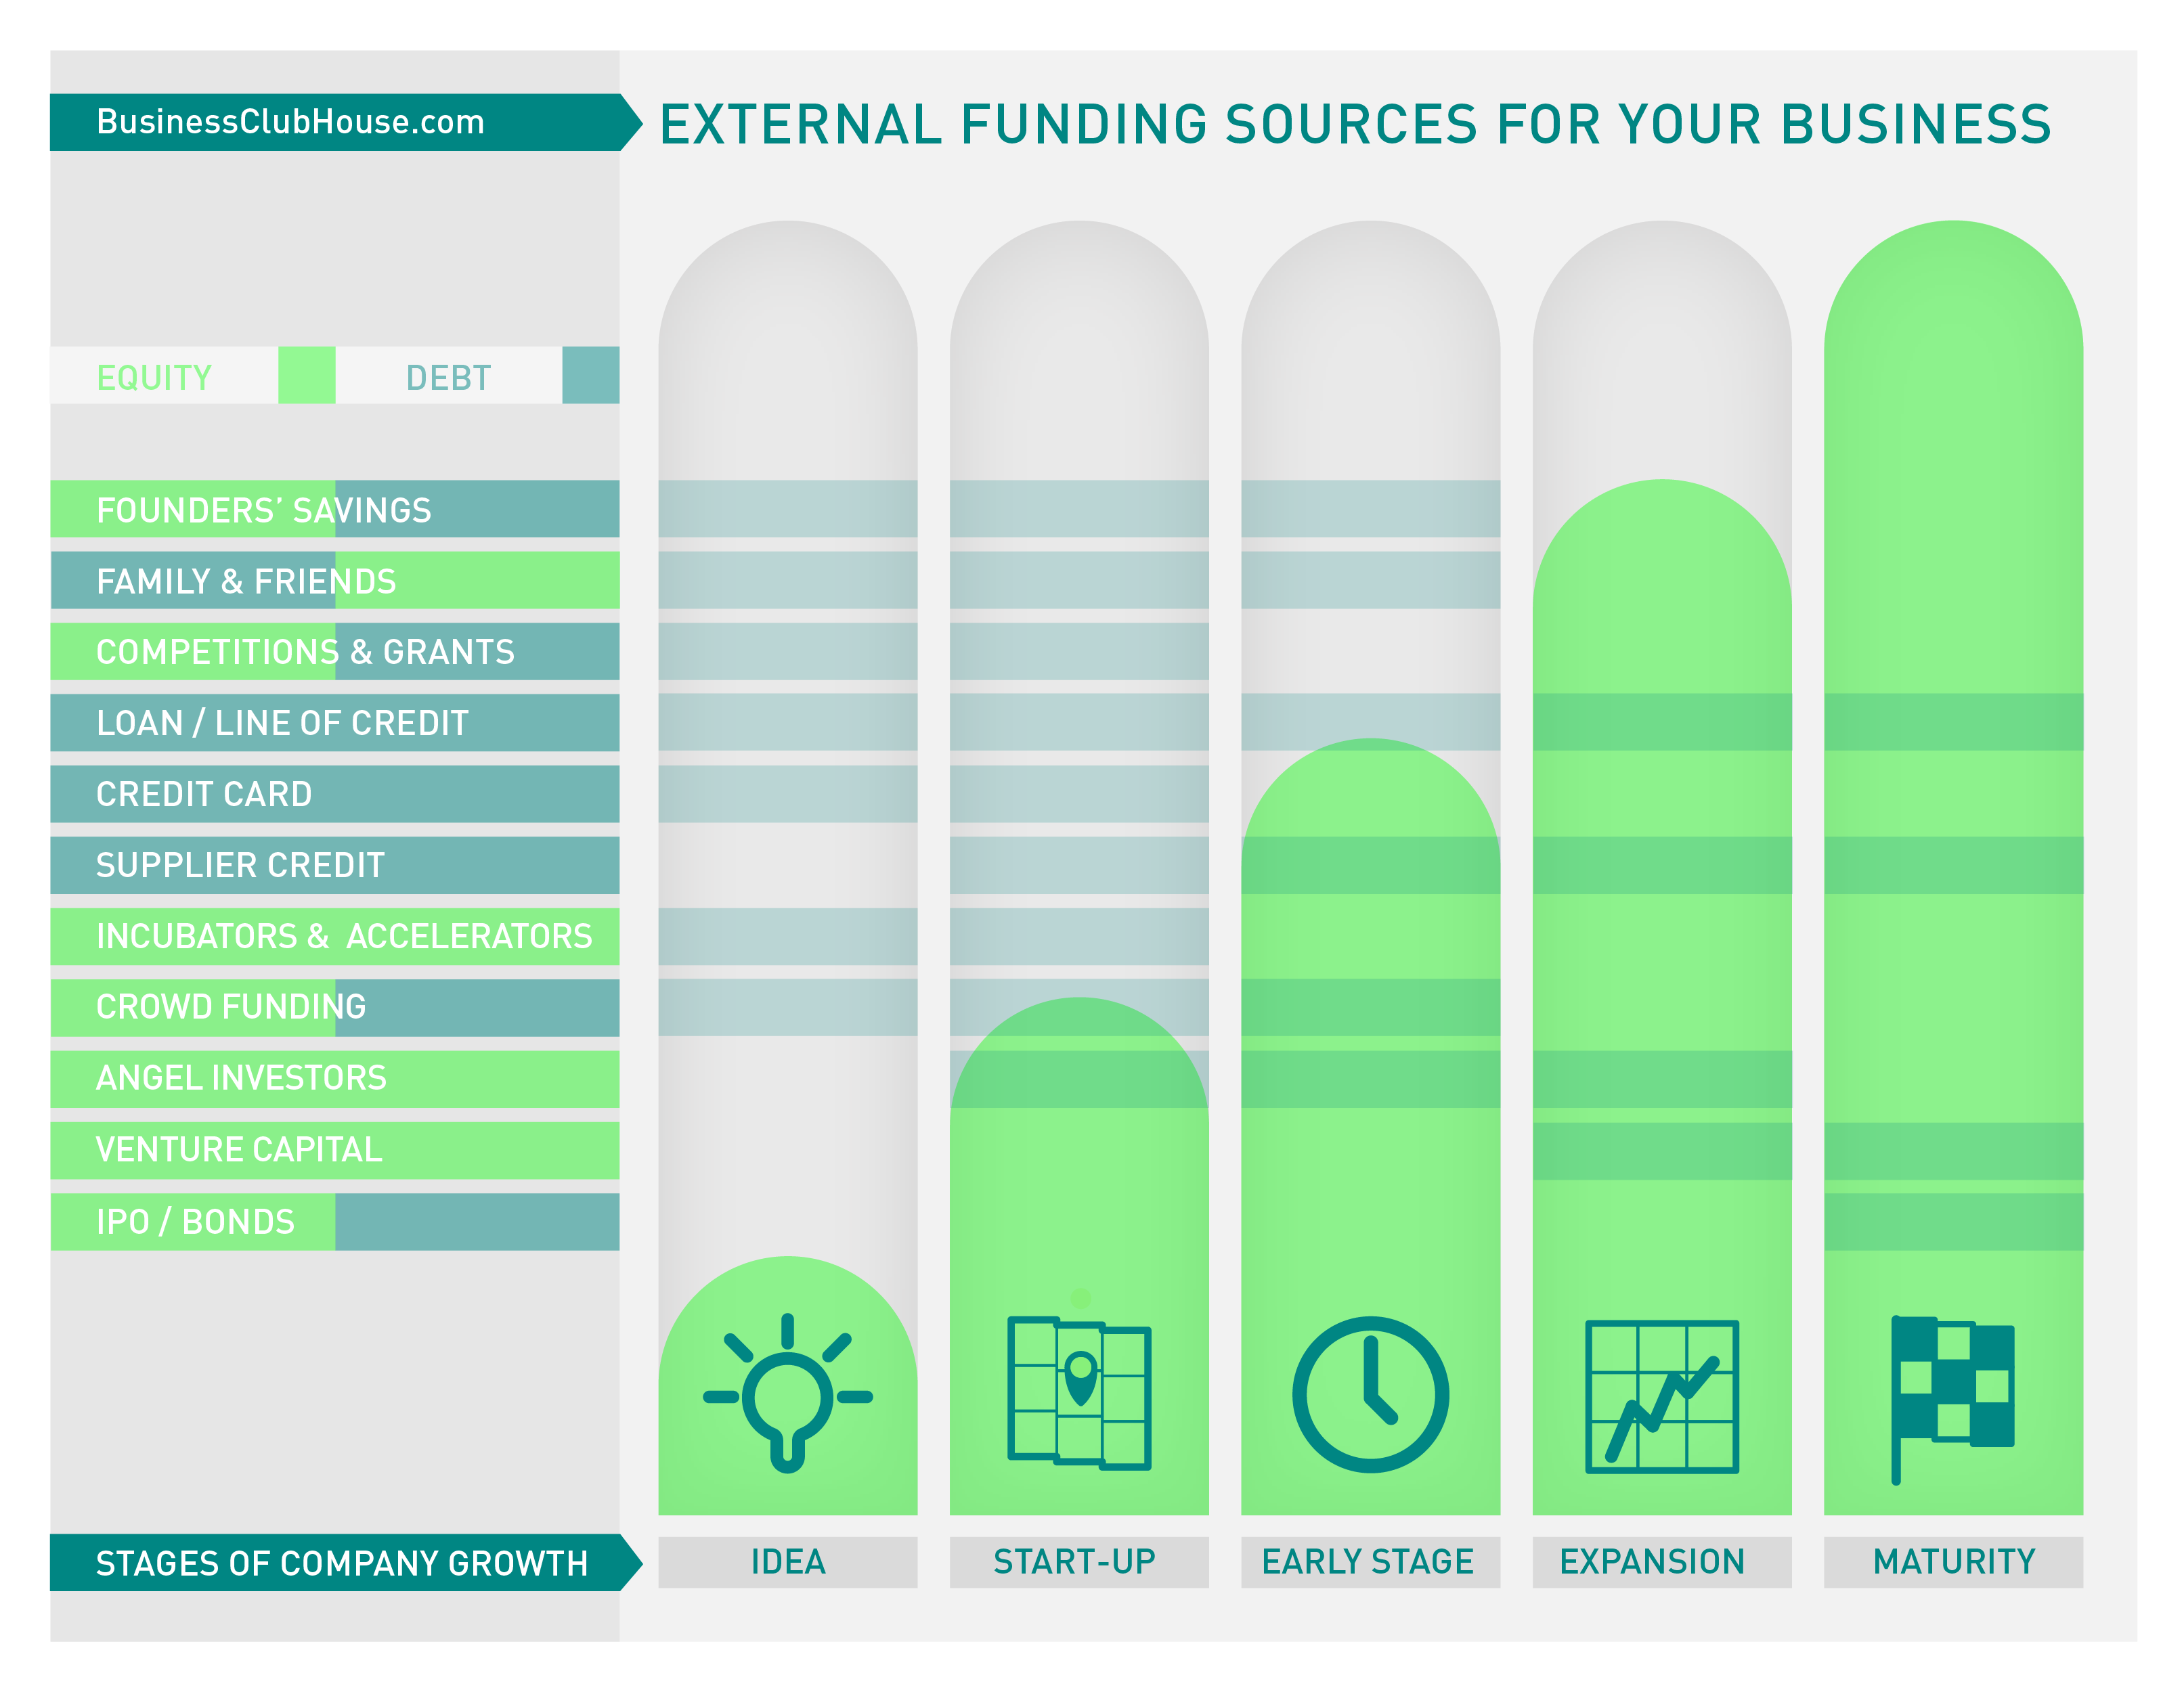 Infographic Financing Sources vs. Company Growth Stages